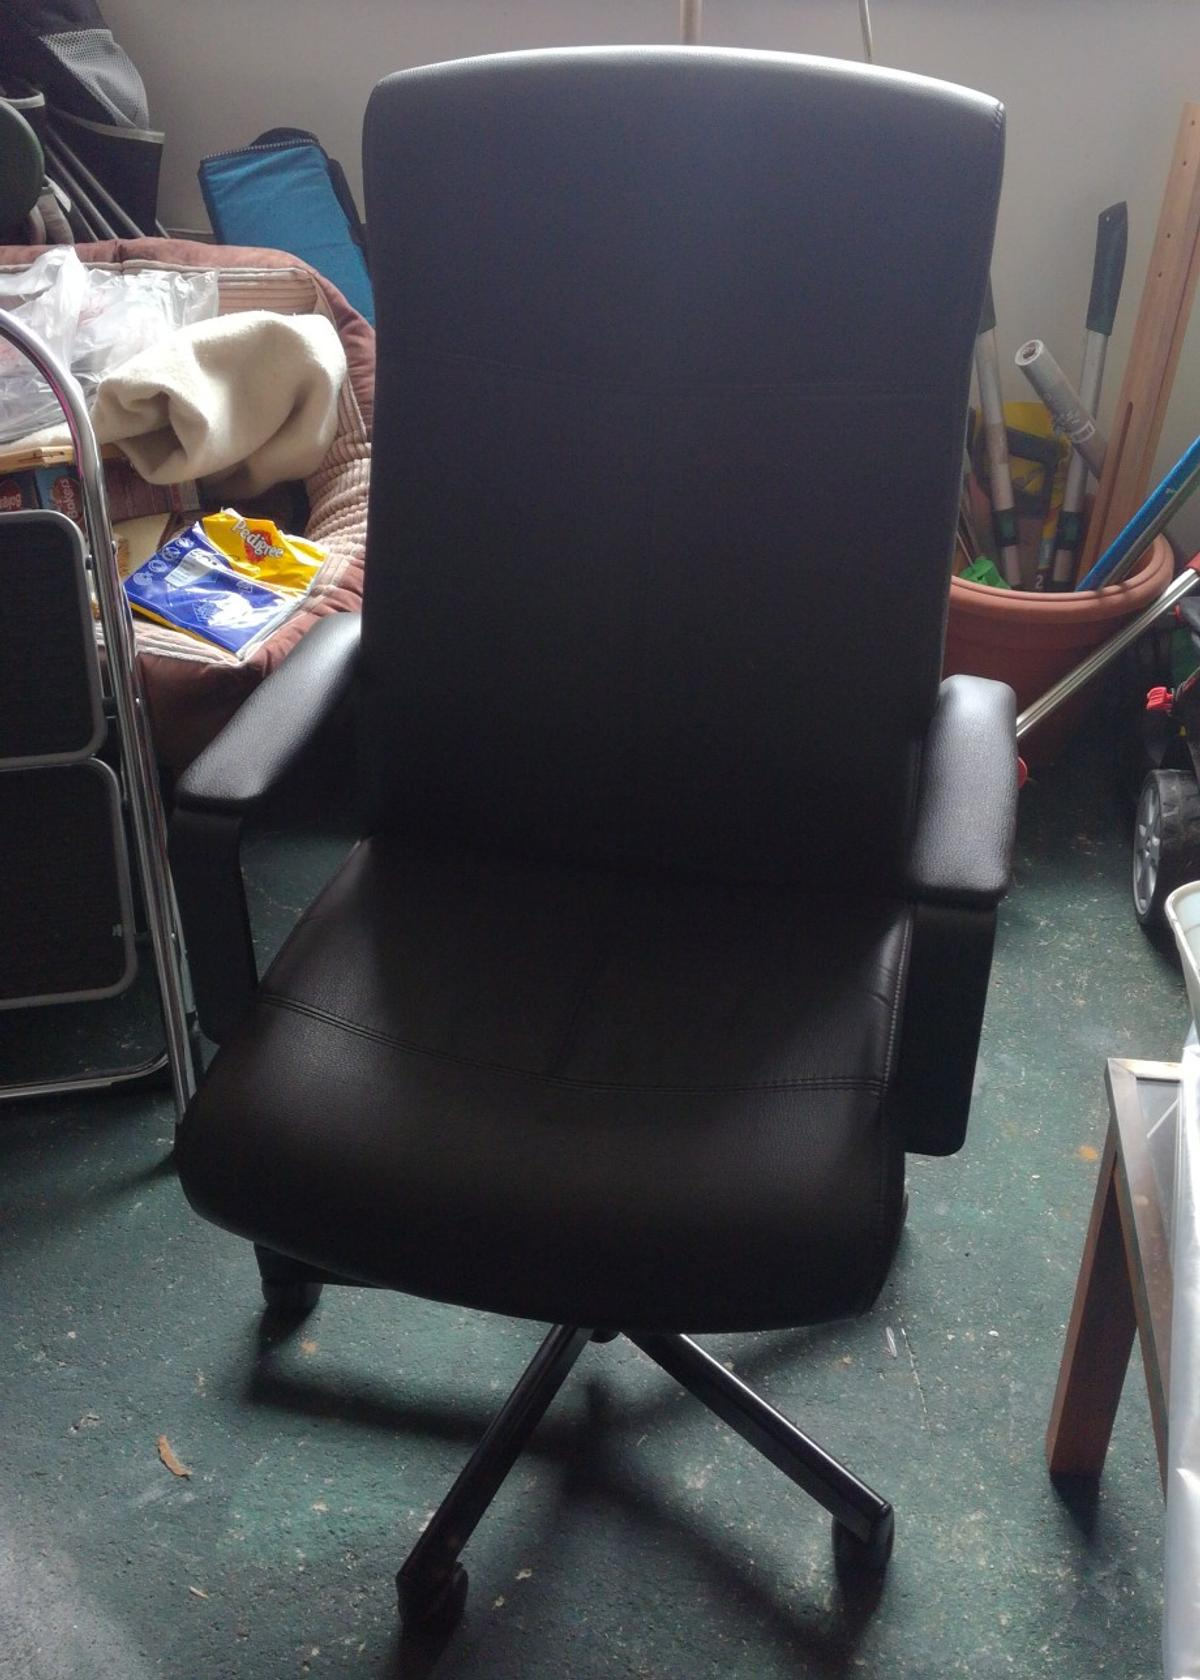 Ikea Northamptonshire 00 Chair For Nn10 Sale Milleberget £20 In E9YeHIDW2